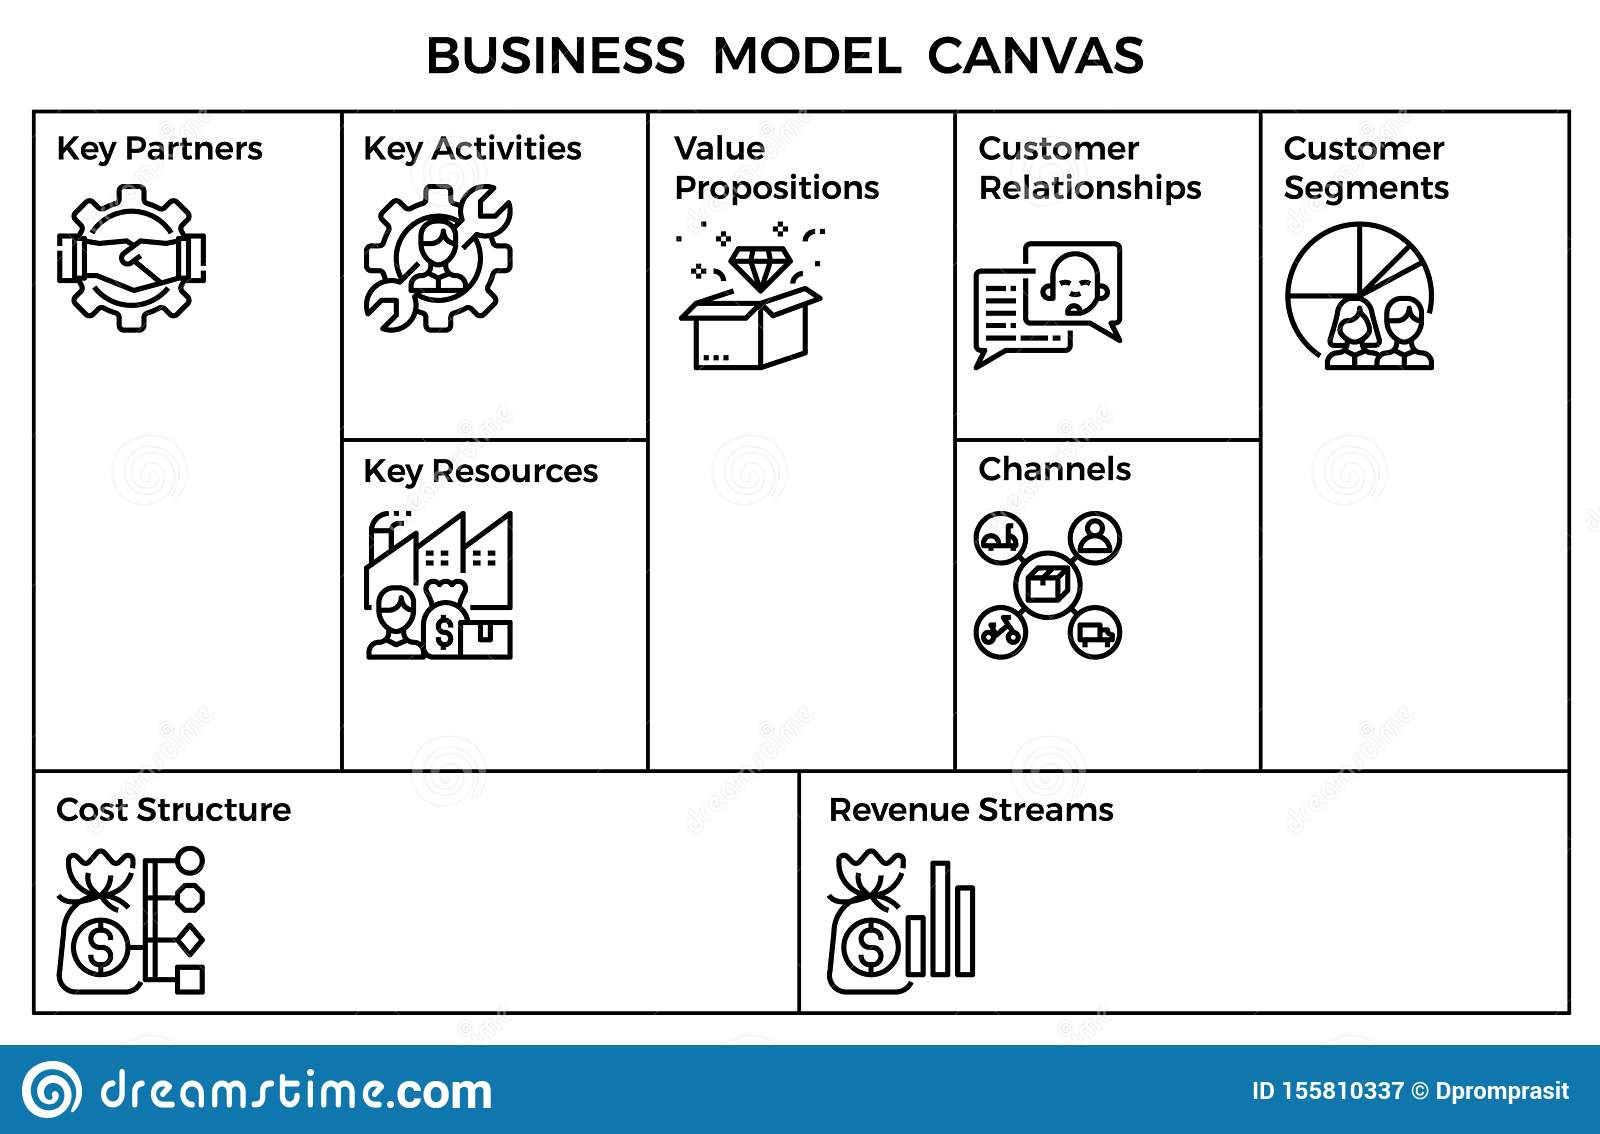 Business Model Canvas Template Stock Illustration Illustration Of Keypartners Channels 155810337